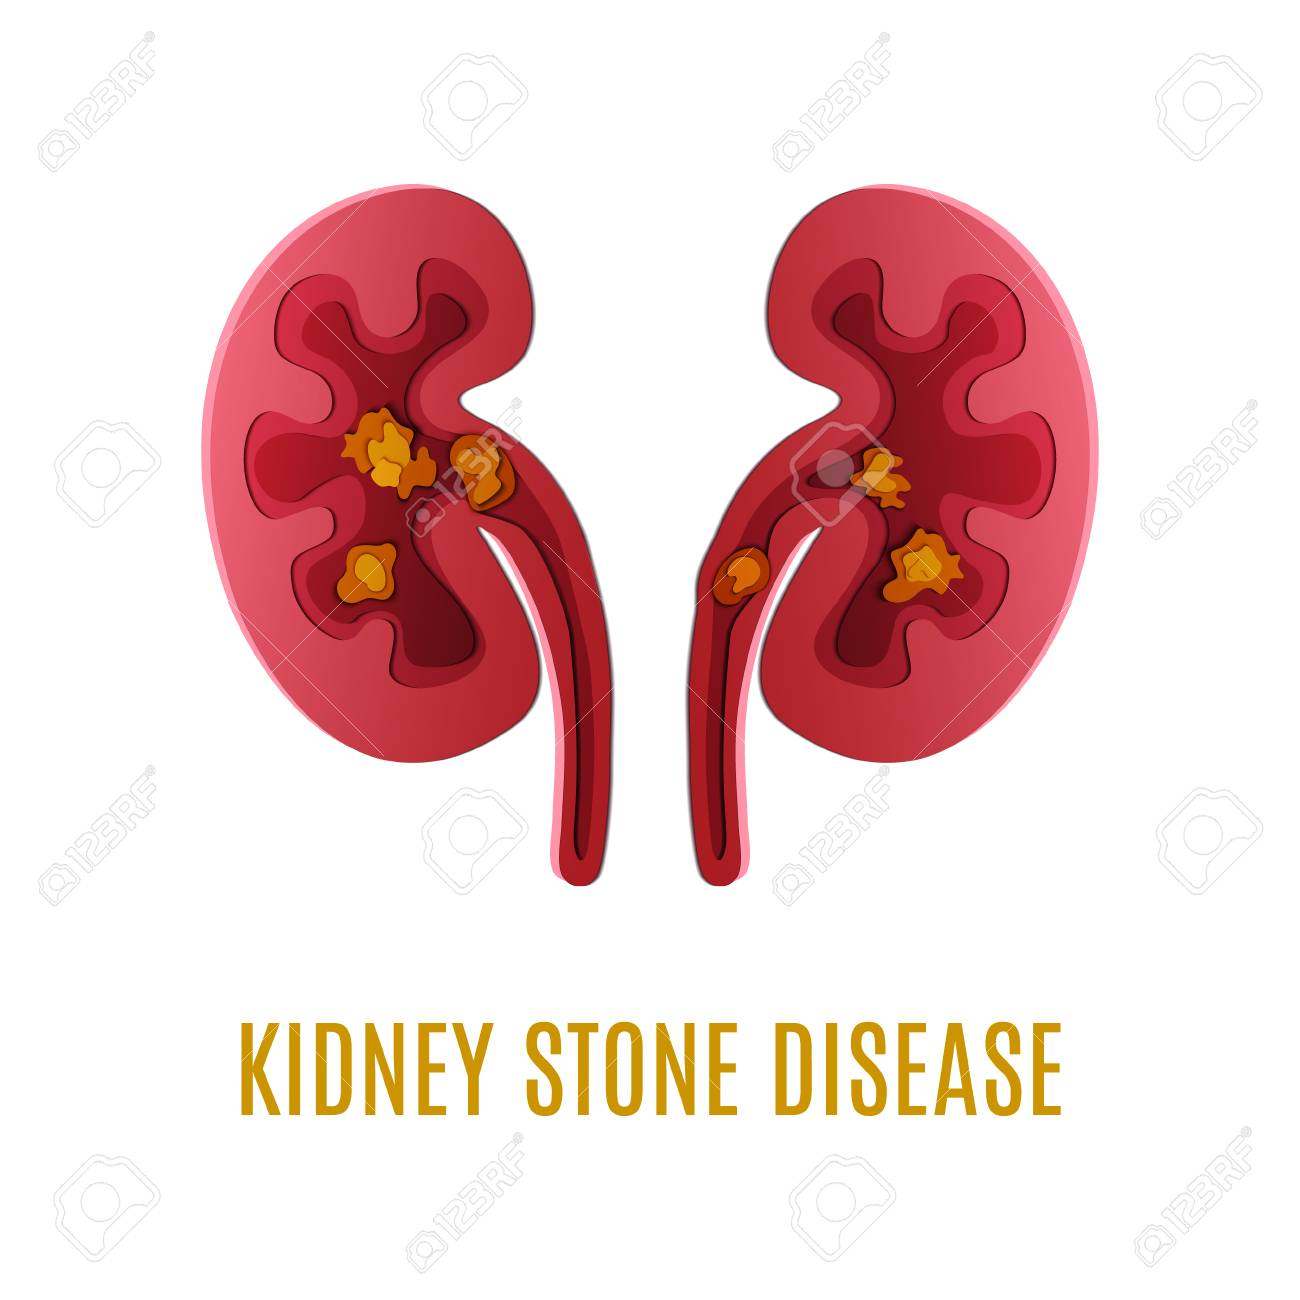 Kidney stone disease awareness poster with kidneys made in 3d kidney stone disease awareness poster with kidneys made in 3d paper cut craft style on white publicscrutiny Images